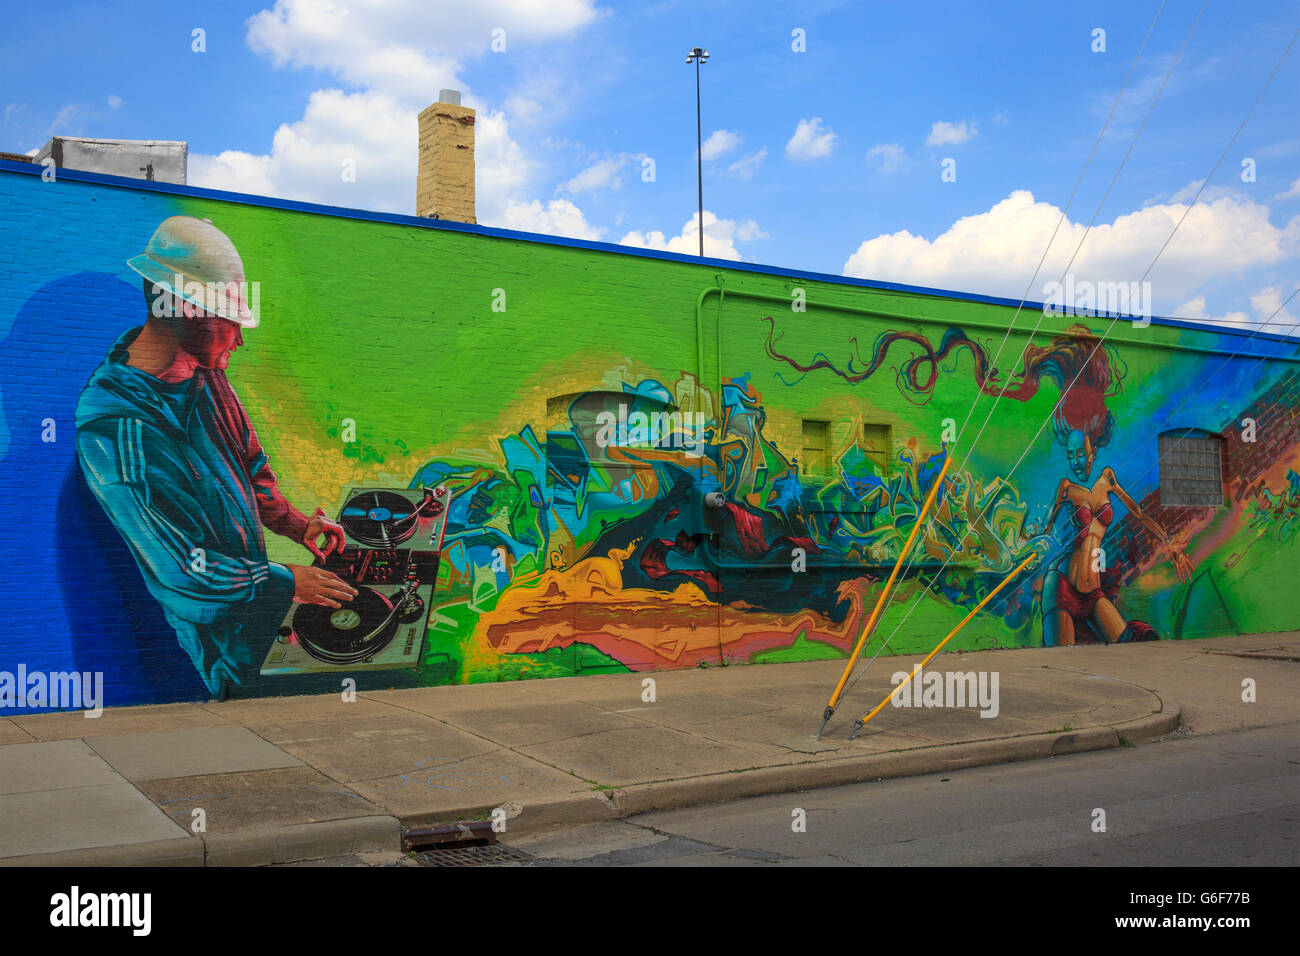 Wall mural on the side of a building depicting a party disc jockey, downtown Indianapolis, Indiana. - Stock Image